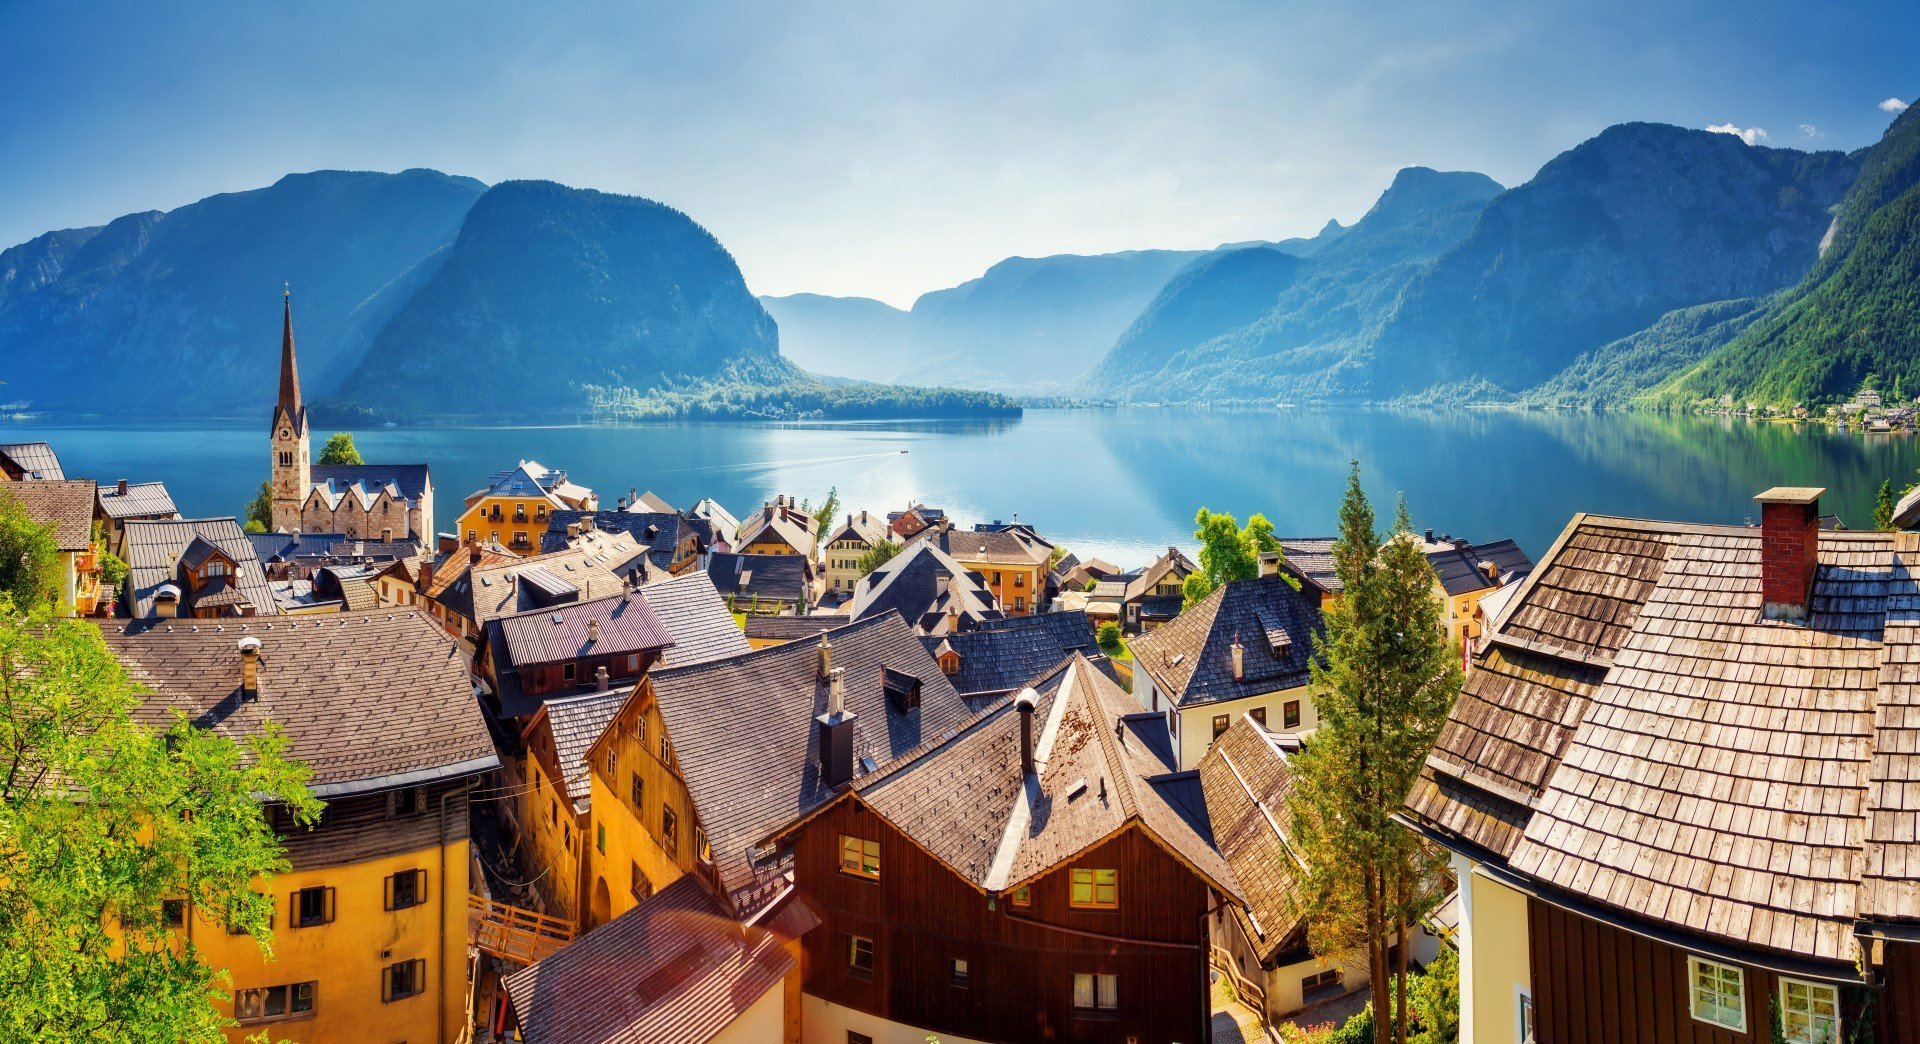 Experience the breathtaking Alpine town of Hallstatt. ***Guaranteed departure with a minimum of 3 persons (or 3 booked seats)***